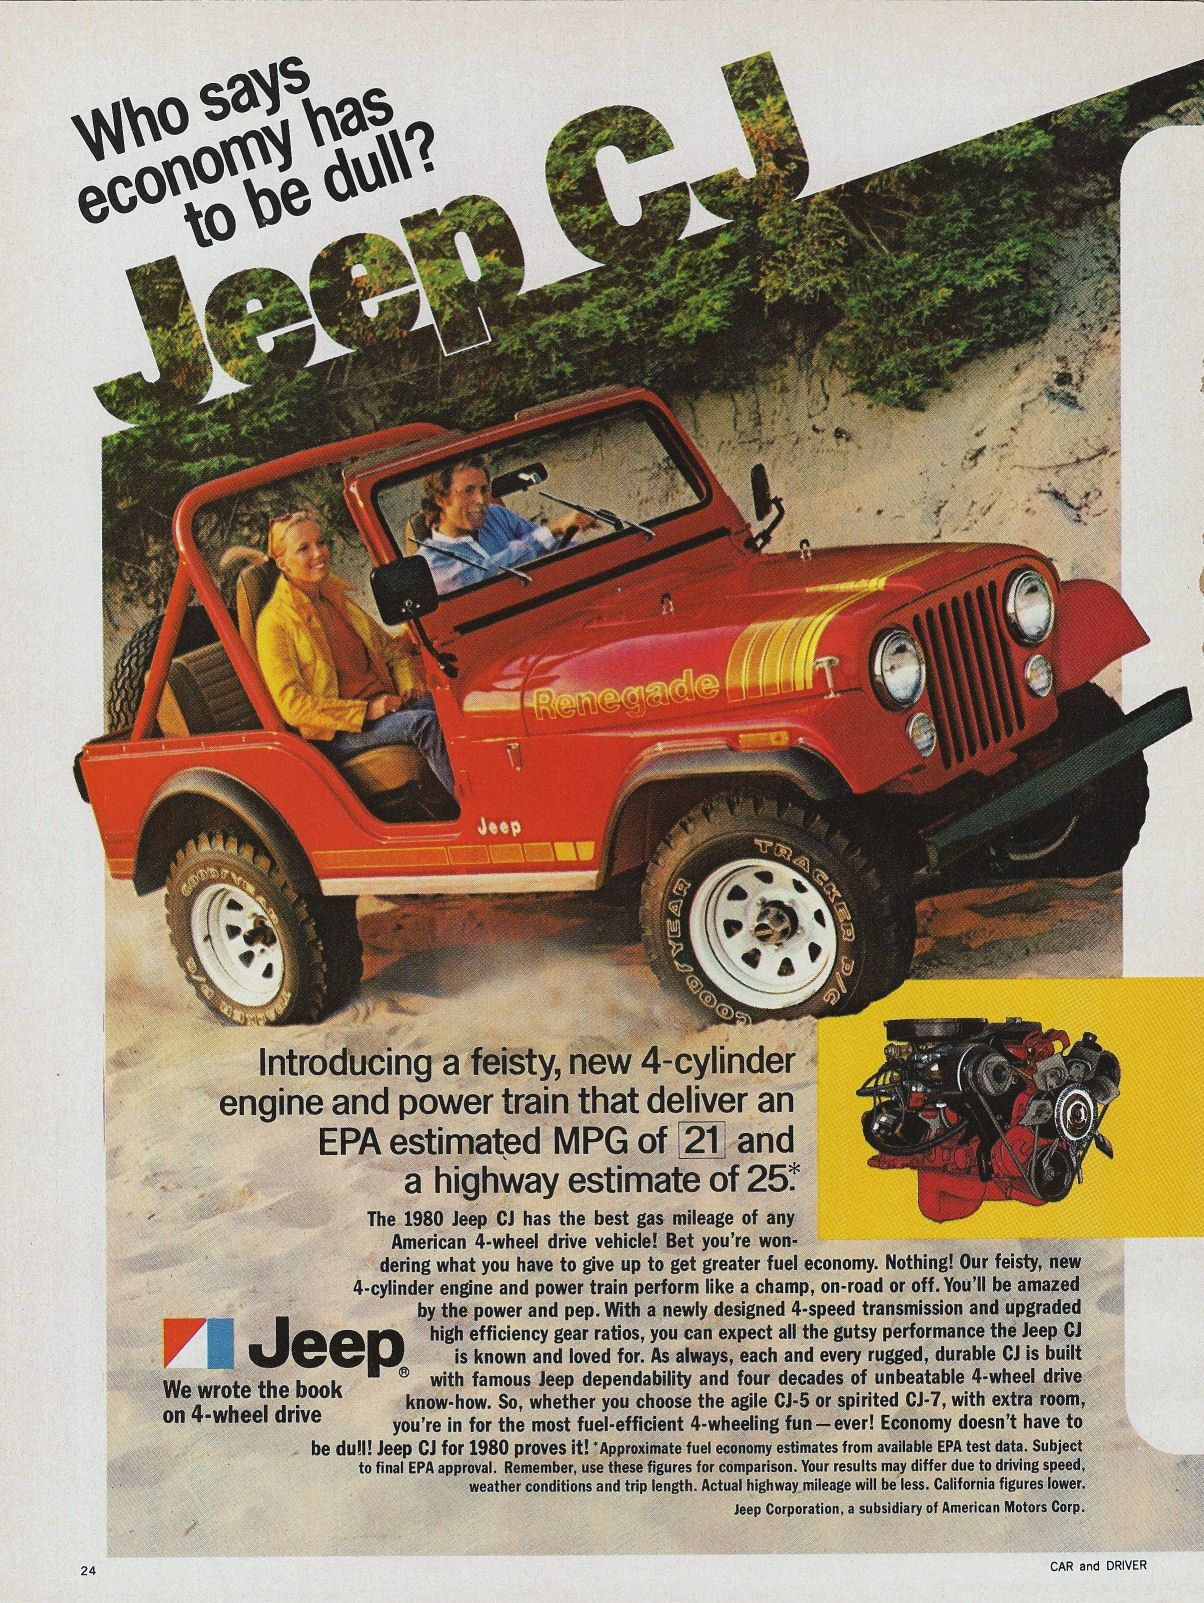 A Be E F Ae Dca E Fe Ef on Best Jeep Images On Pinterest Truck Rolling Carts And